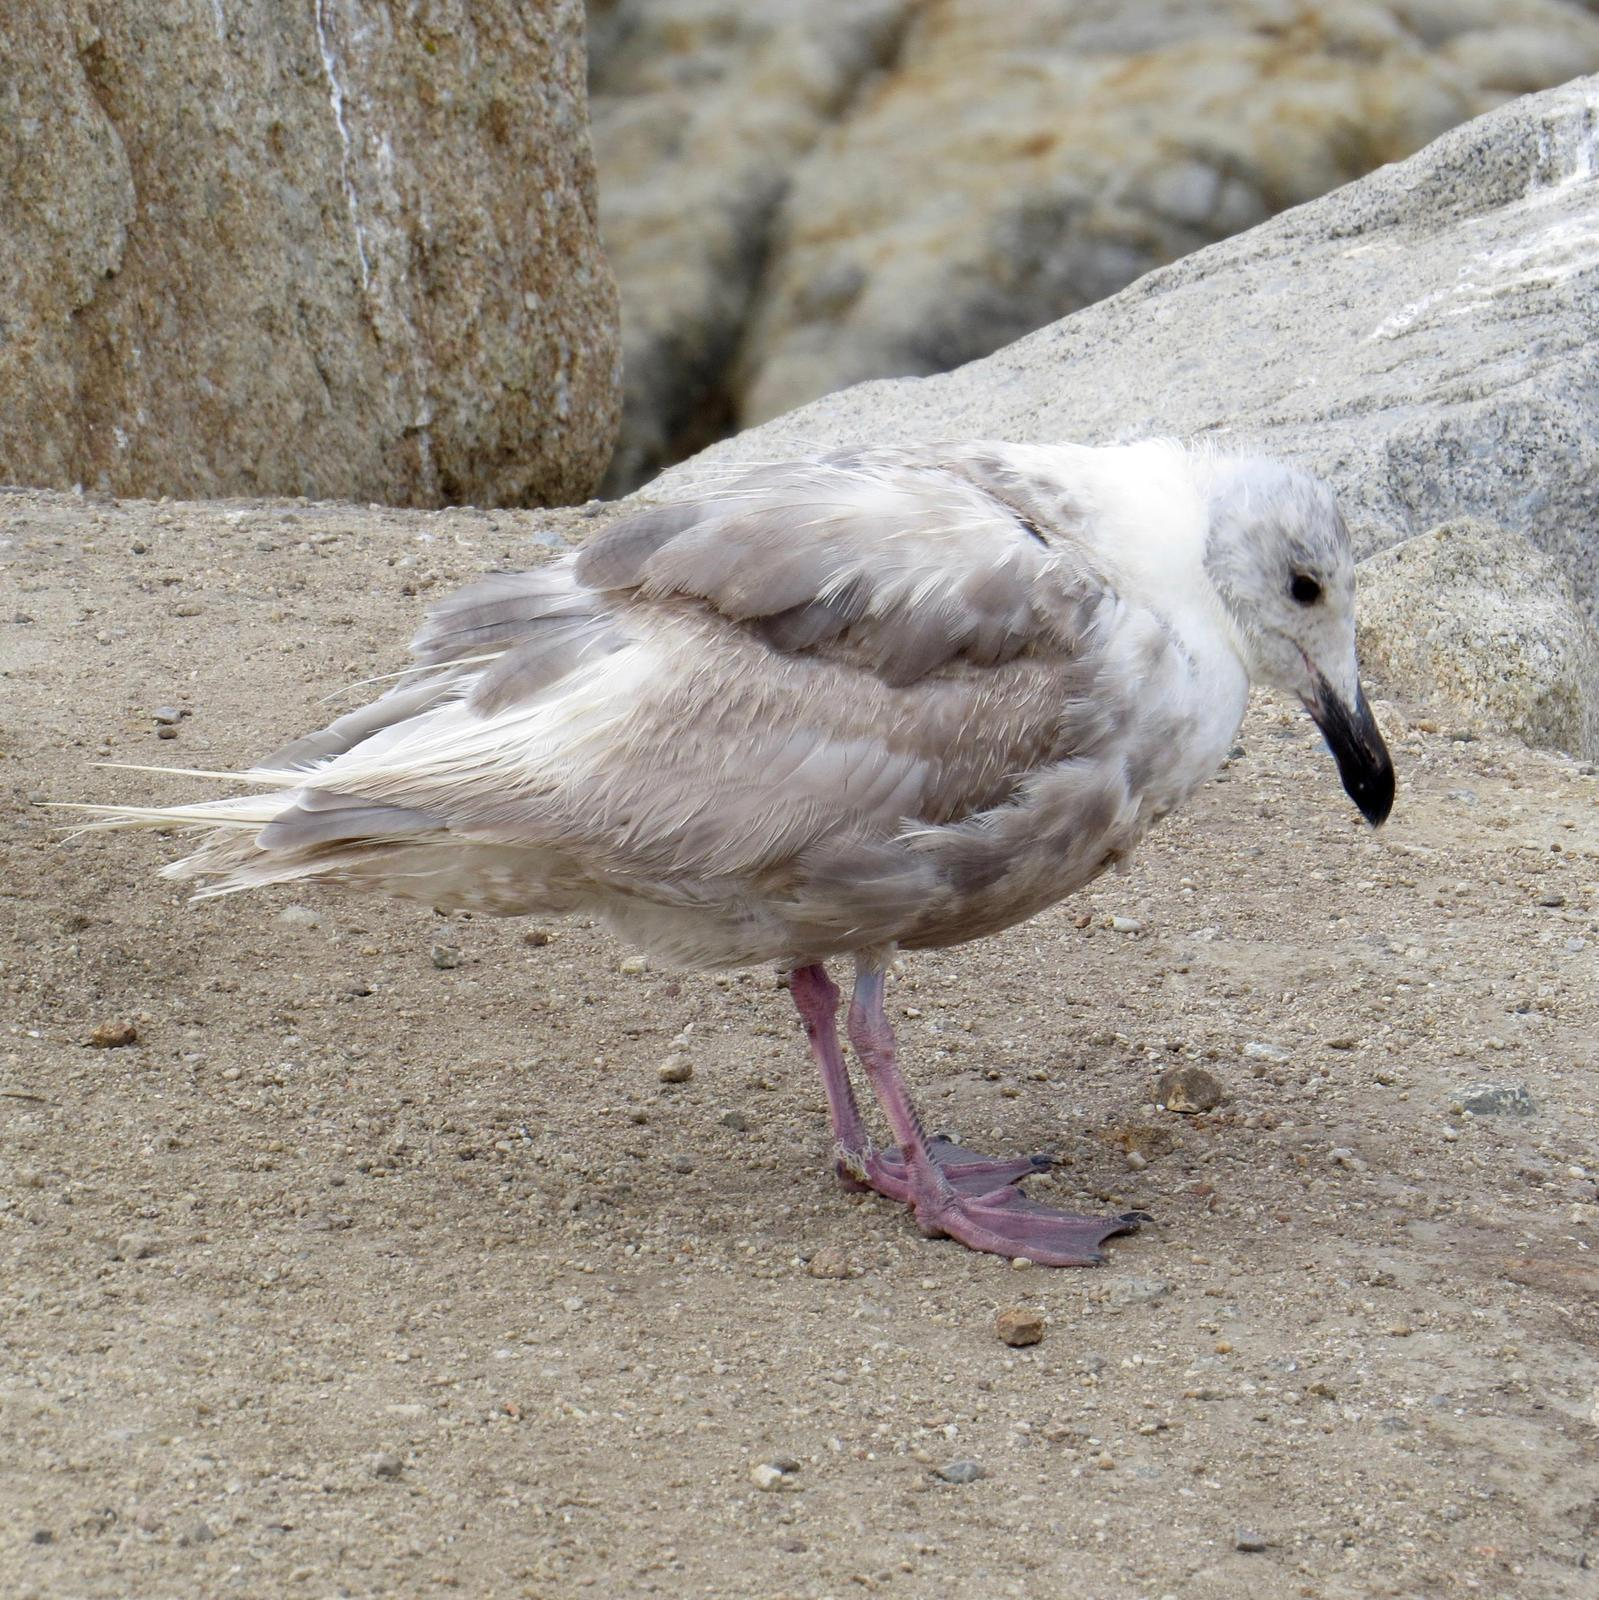 Glaucous-winged Gull Photo by Don Glasco